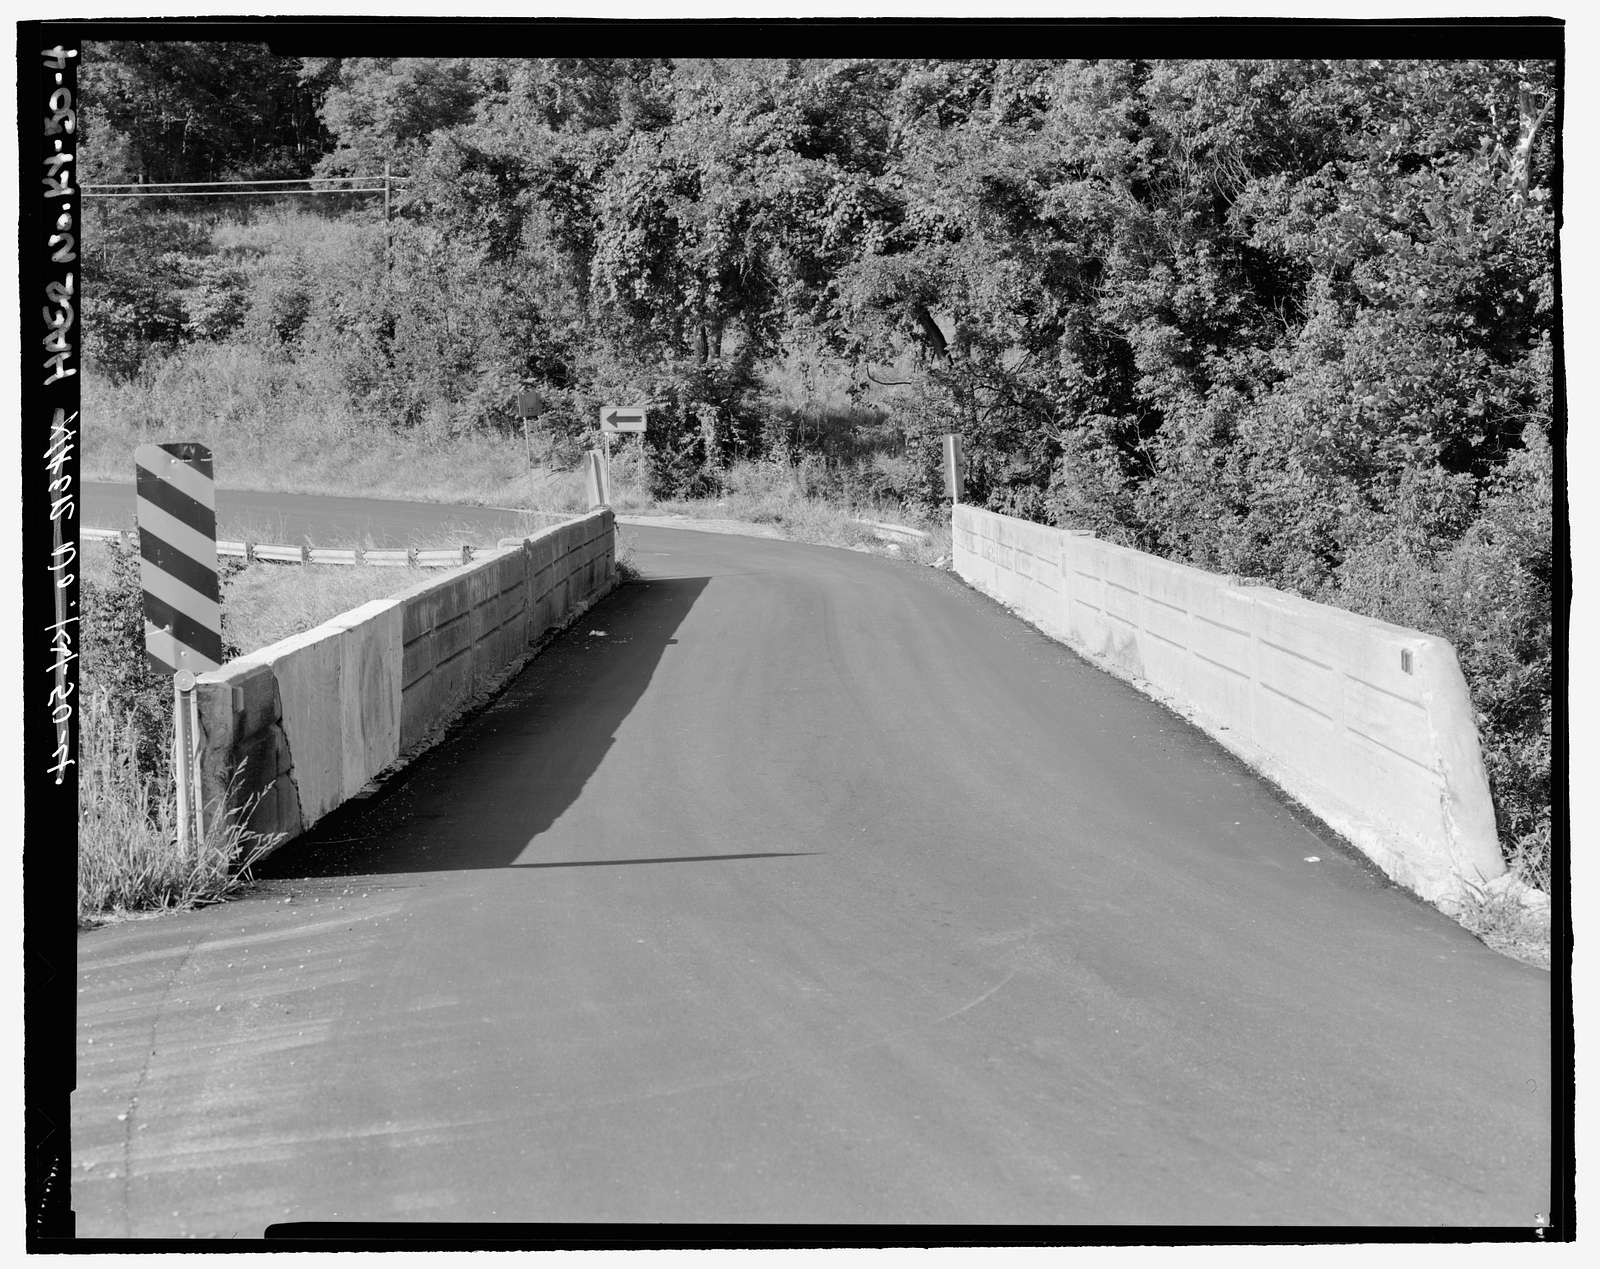 Kentucky Route 36 Bridge, Spanning Lick Fork Creek near Camp Northward, Williamstown, Grant County, KY